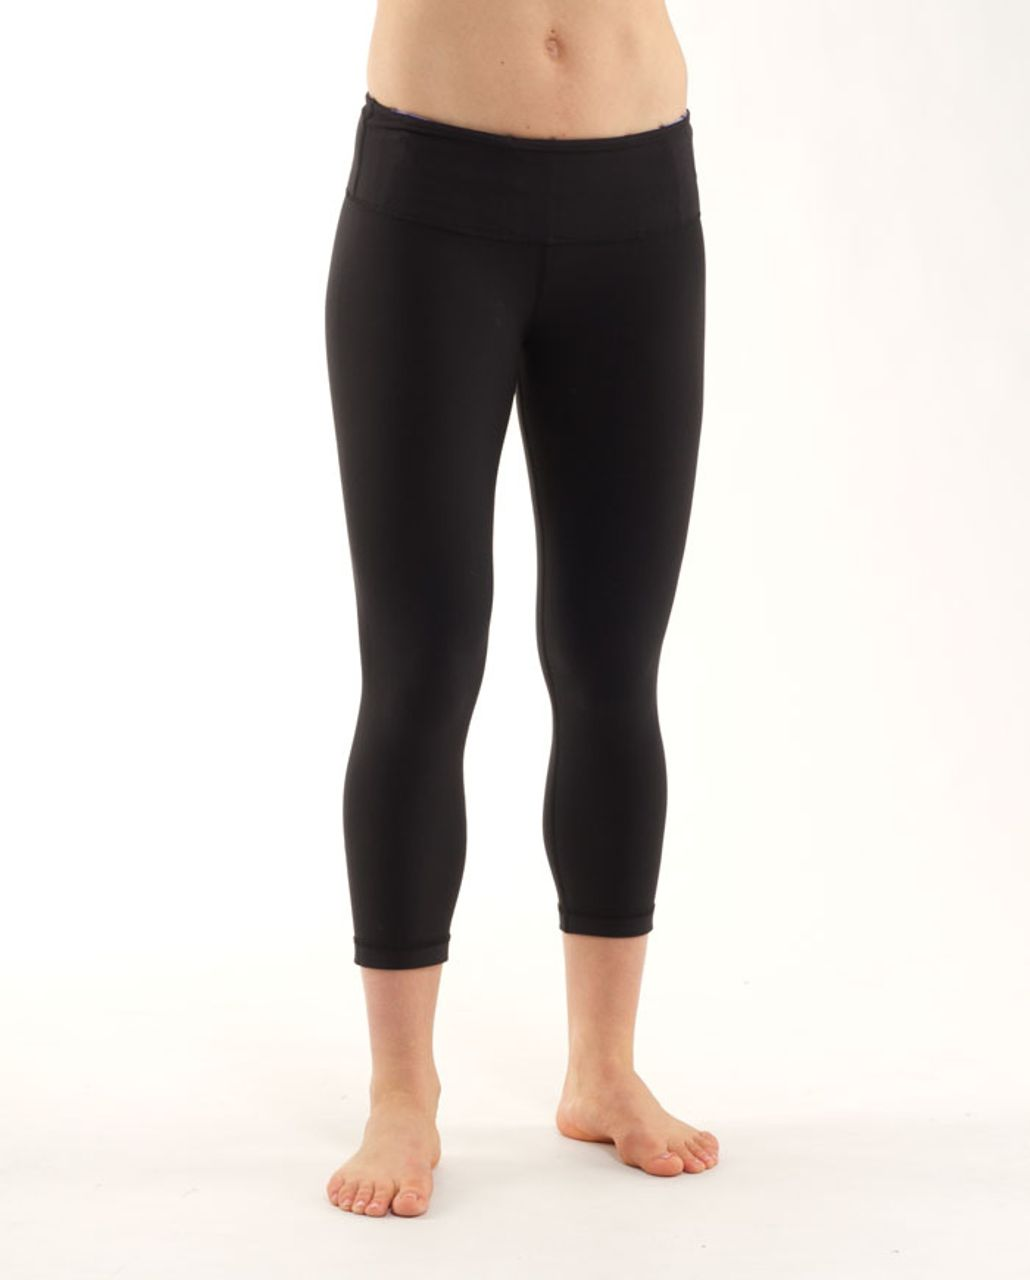 Lululemon Wunder Under Crop *Pique Waistband - Black /  Winter Quilting 15